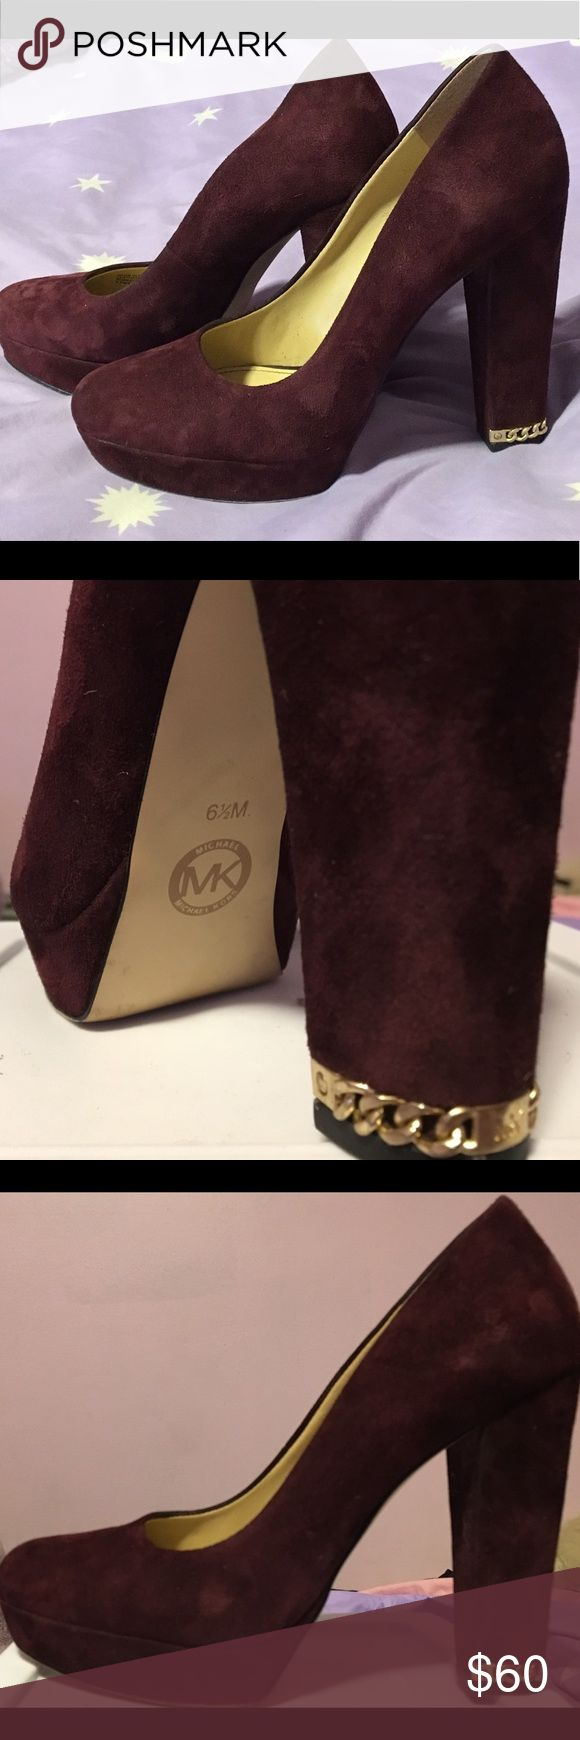 Michael Kors platform heels wine red w/gold accent Size 6 1/2 and made of suede-like material with the cutest chain accent on the bottom of the heel. I absolutely HAD to have these when I saw them, only one left and it was exactly my size, matched a dress I had perfectly ❤️ Half a year later and I never wore that dress because the plan fell through and I've worn these to work one time and never again. Please give these babies a nice home. Just the slightest smudge from the store but I don't…